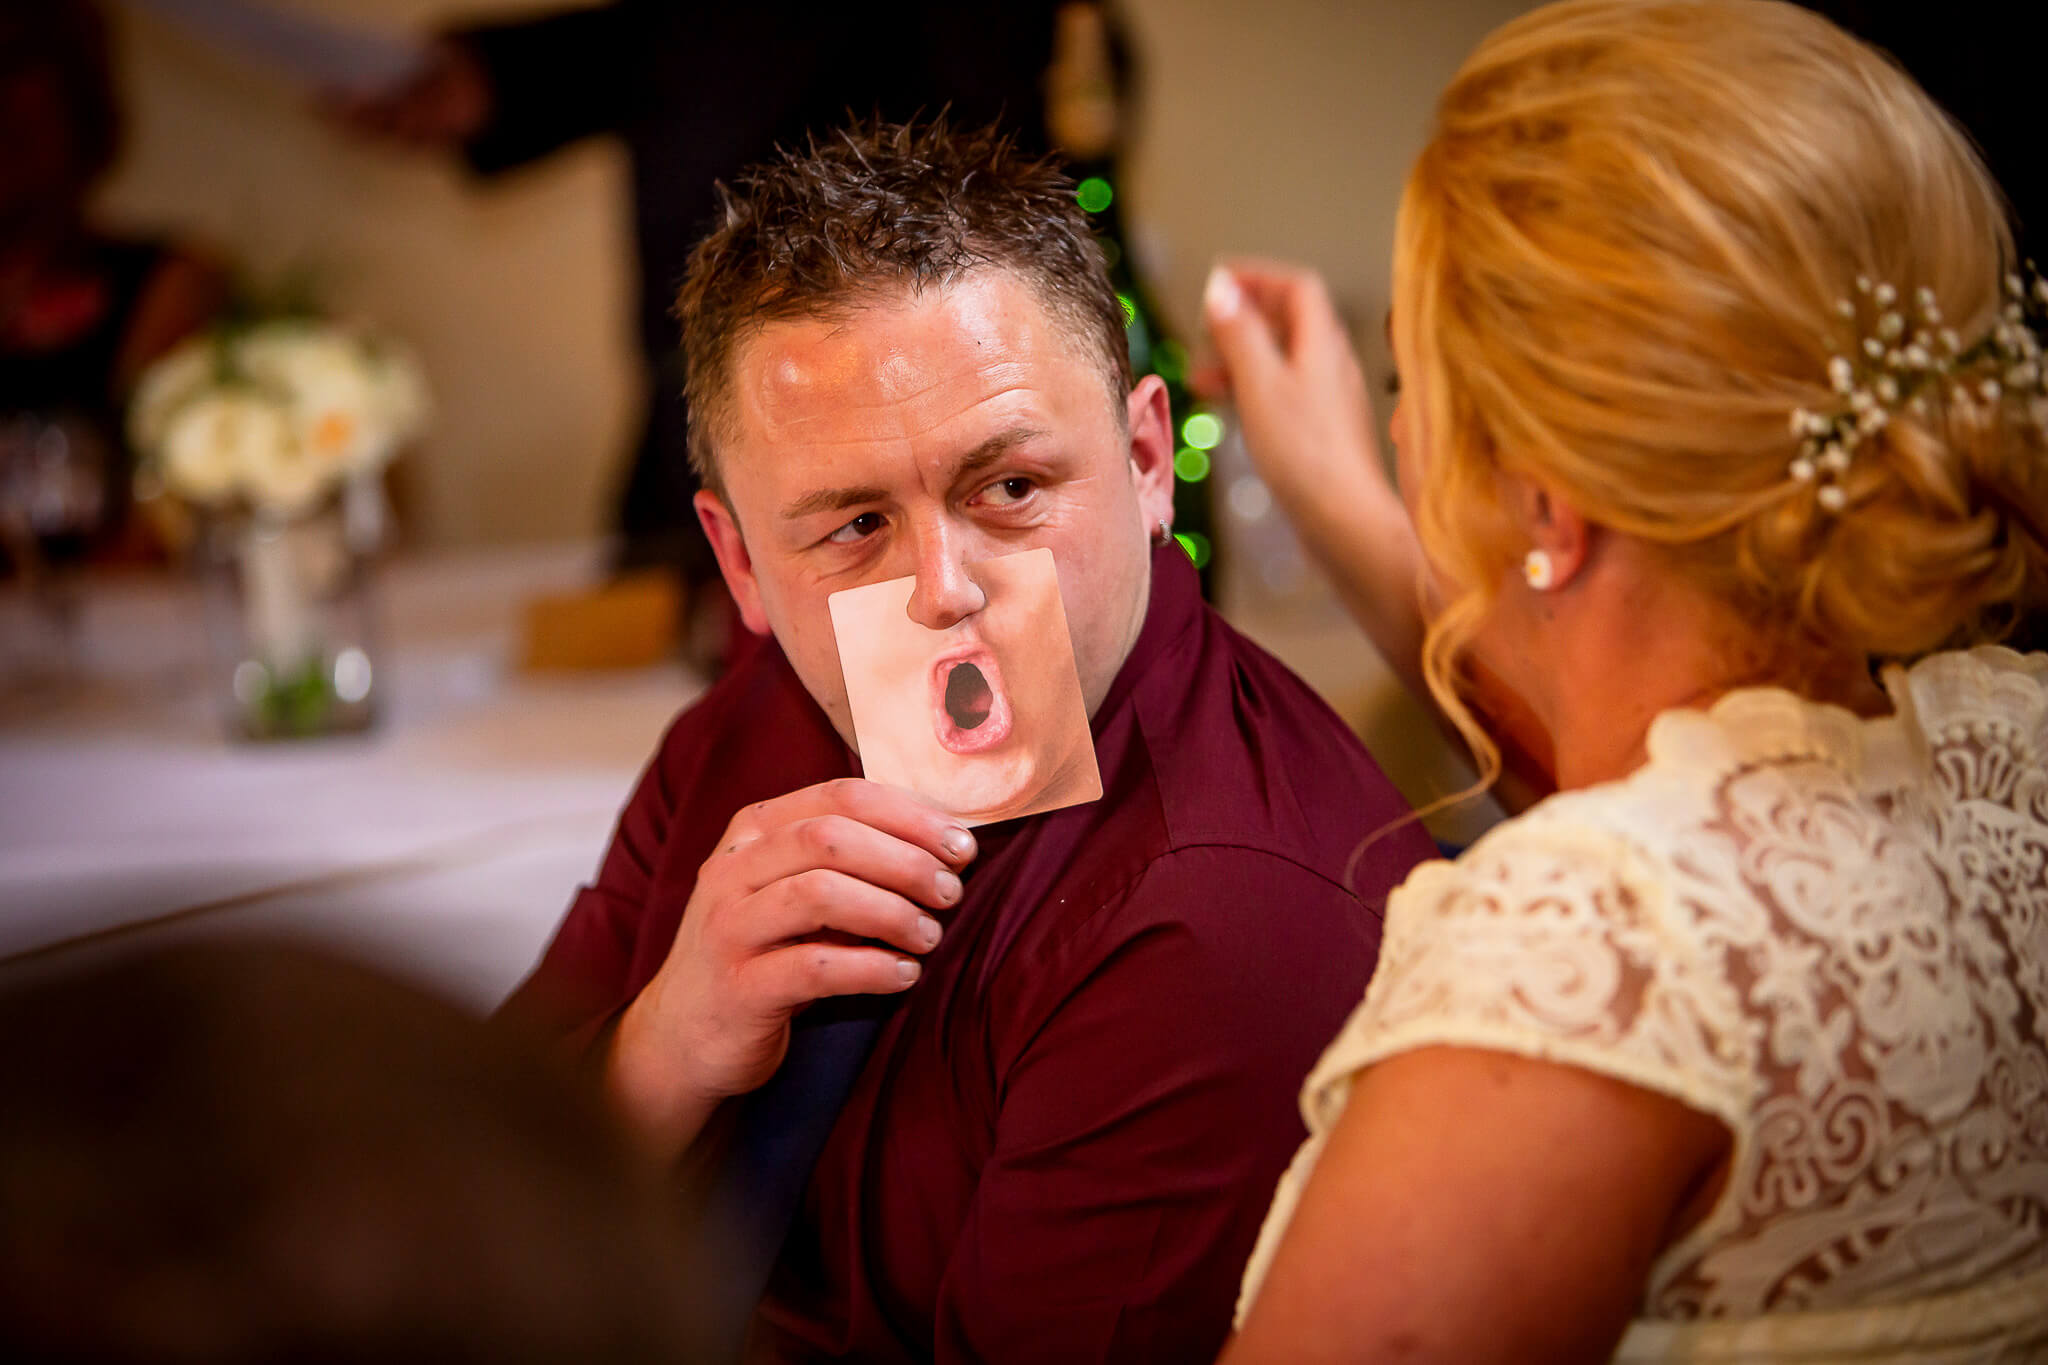 best-wedding-photographers-uk-europe-stanbury-photography-126